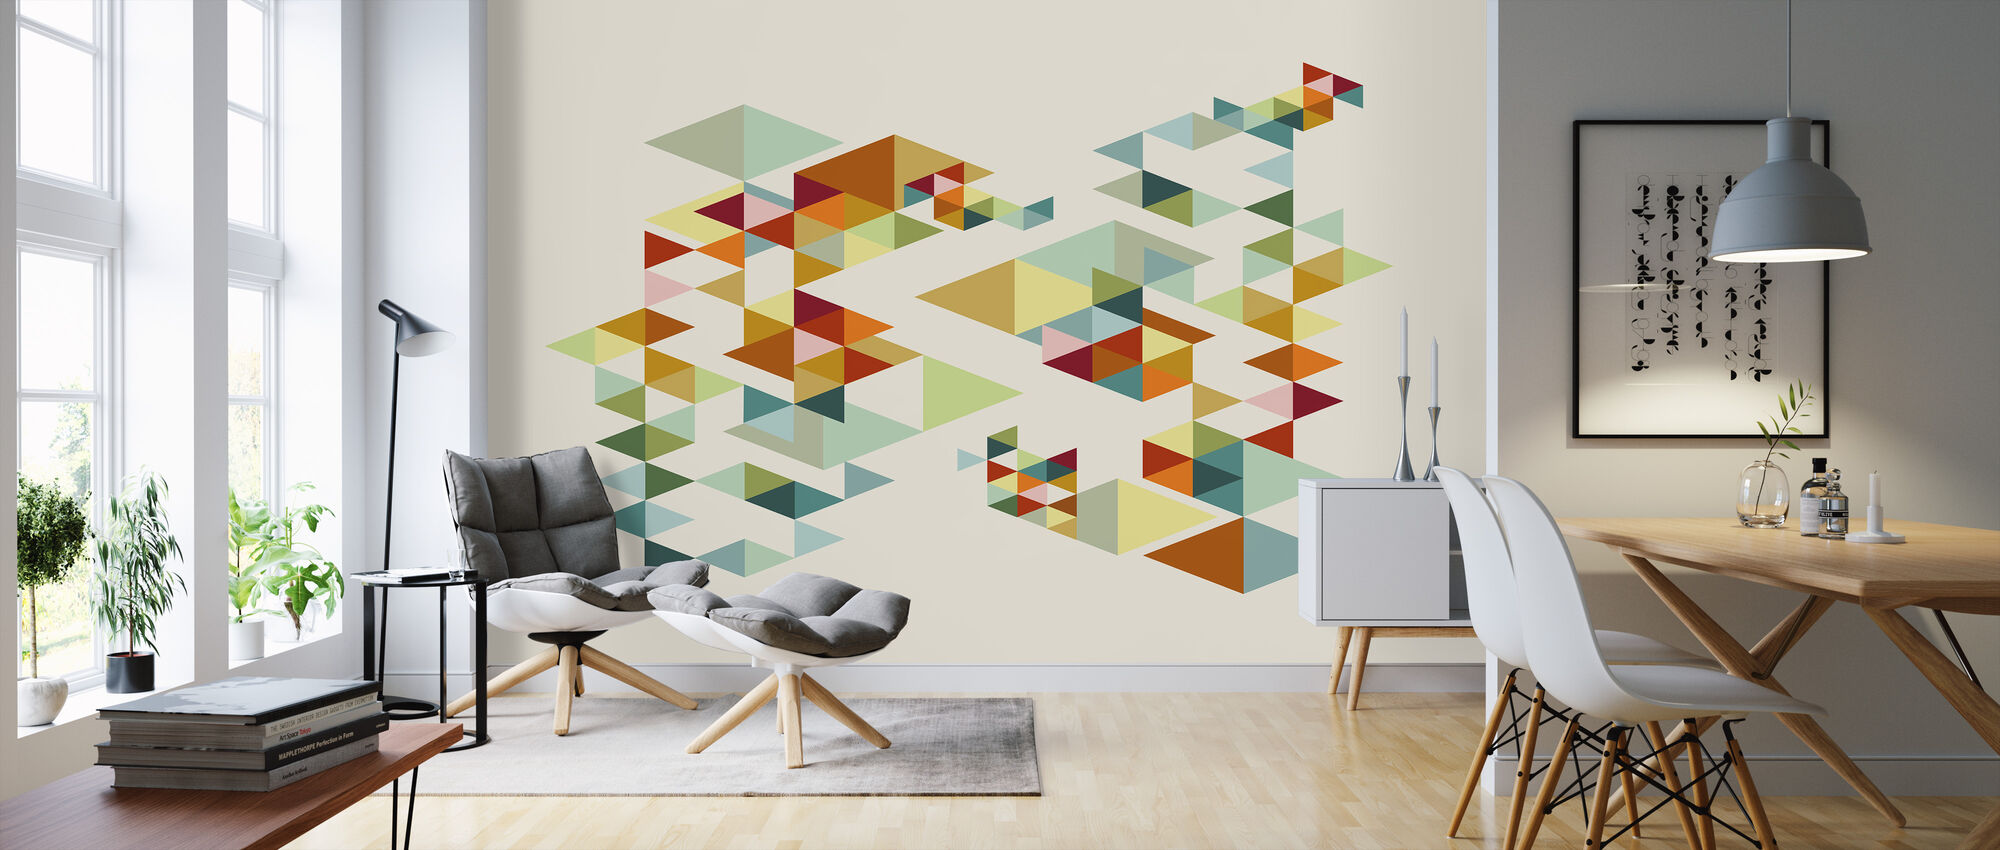 Retrospectra - Wallpaper - Living Room